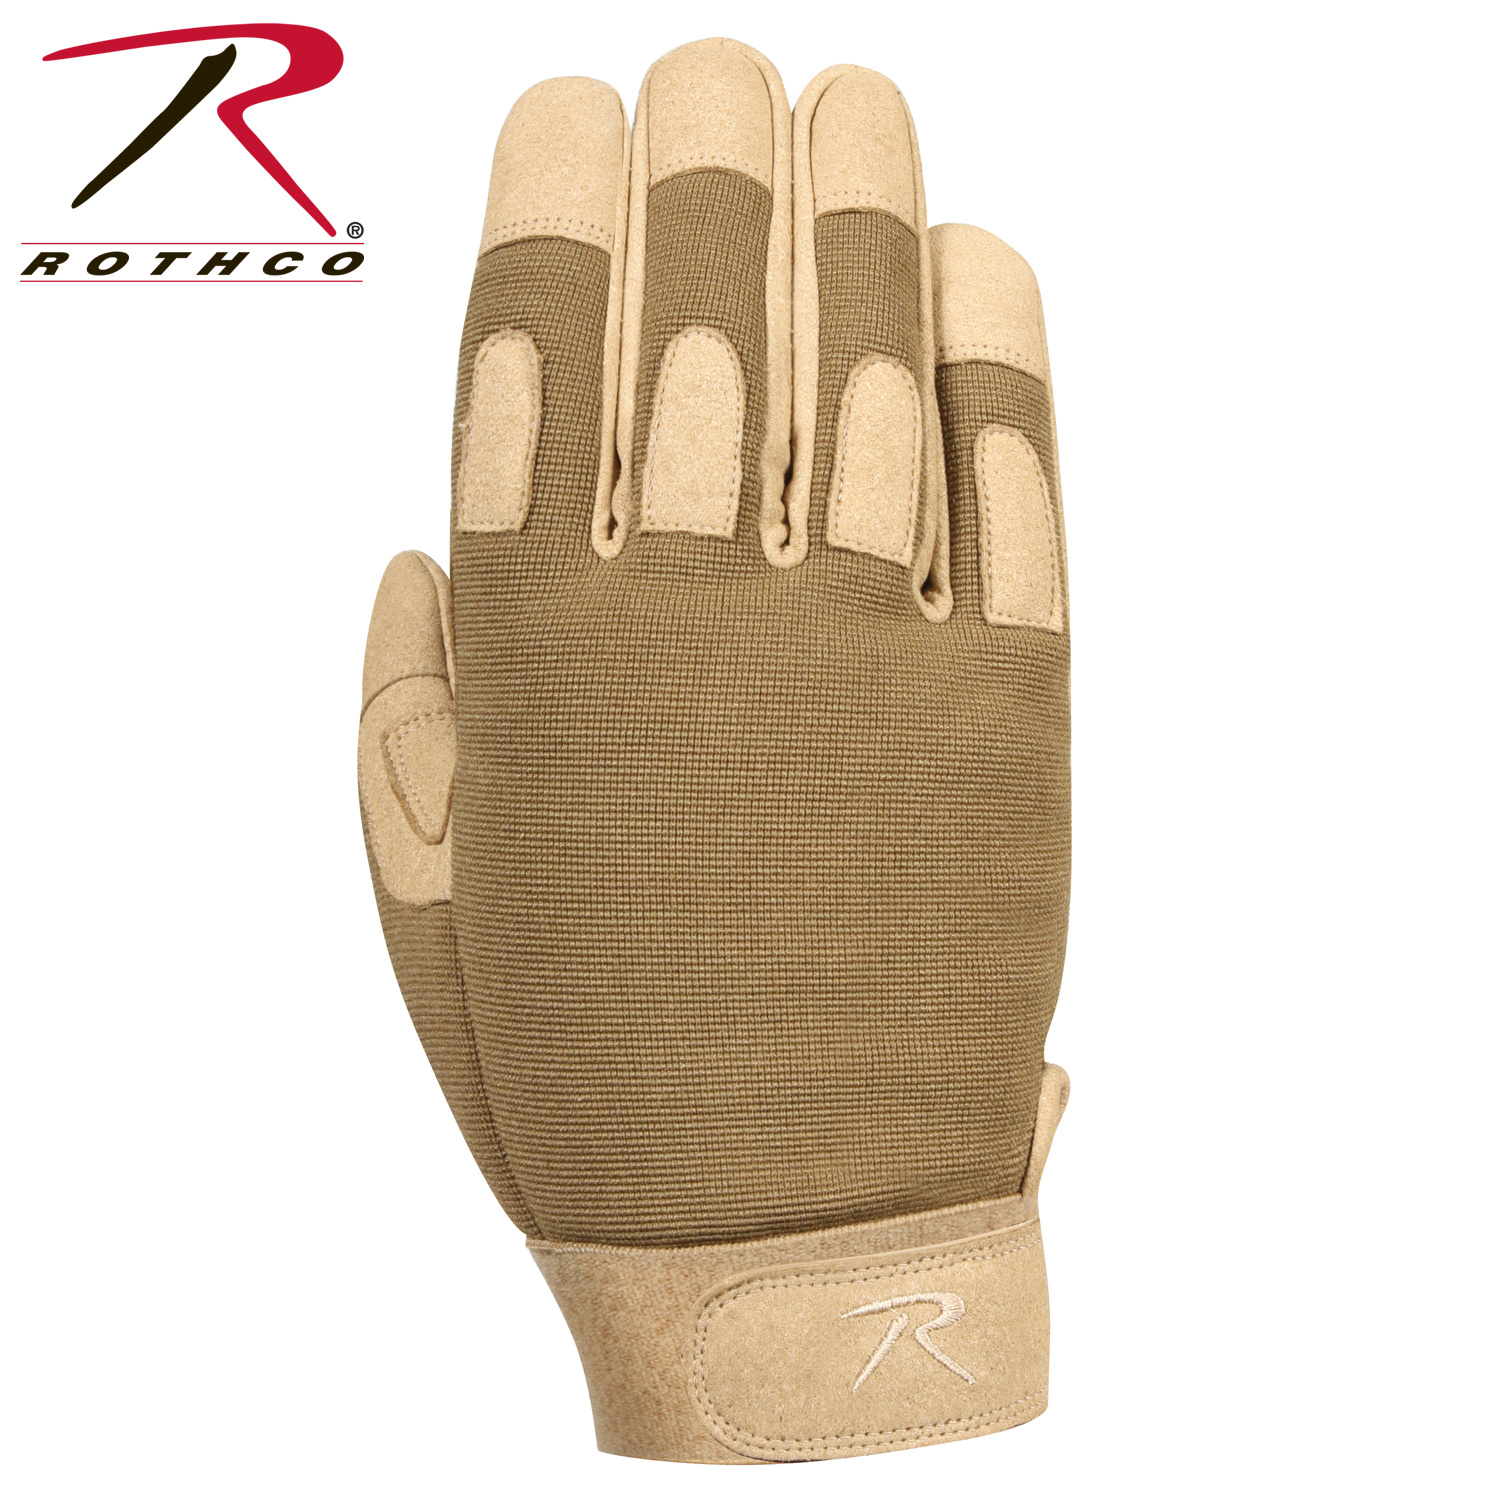 Rothco Rothco Lightweight All Purpose Duty Gloves-Coyote